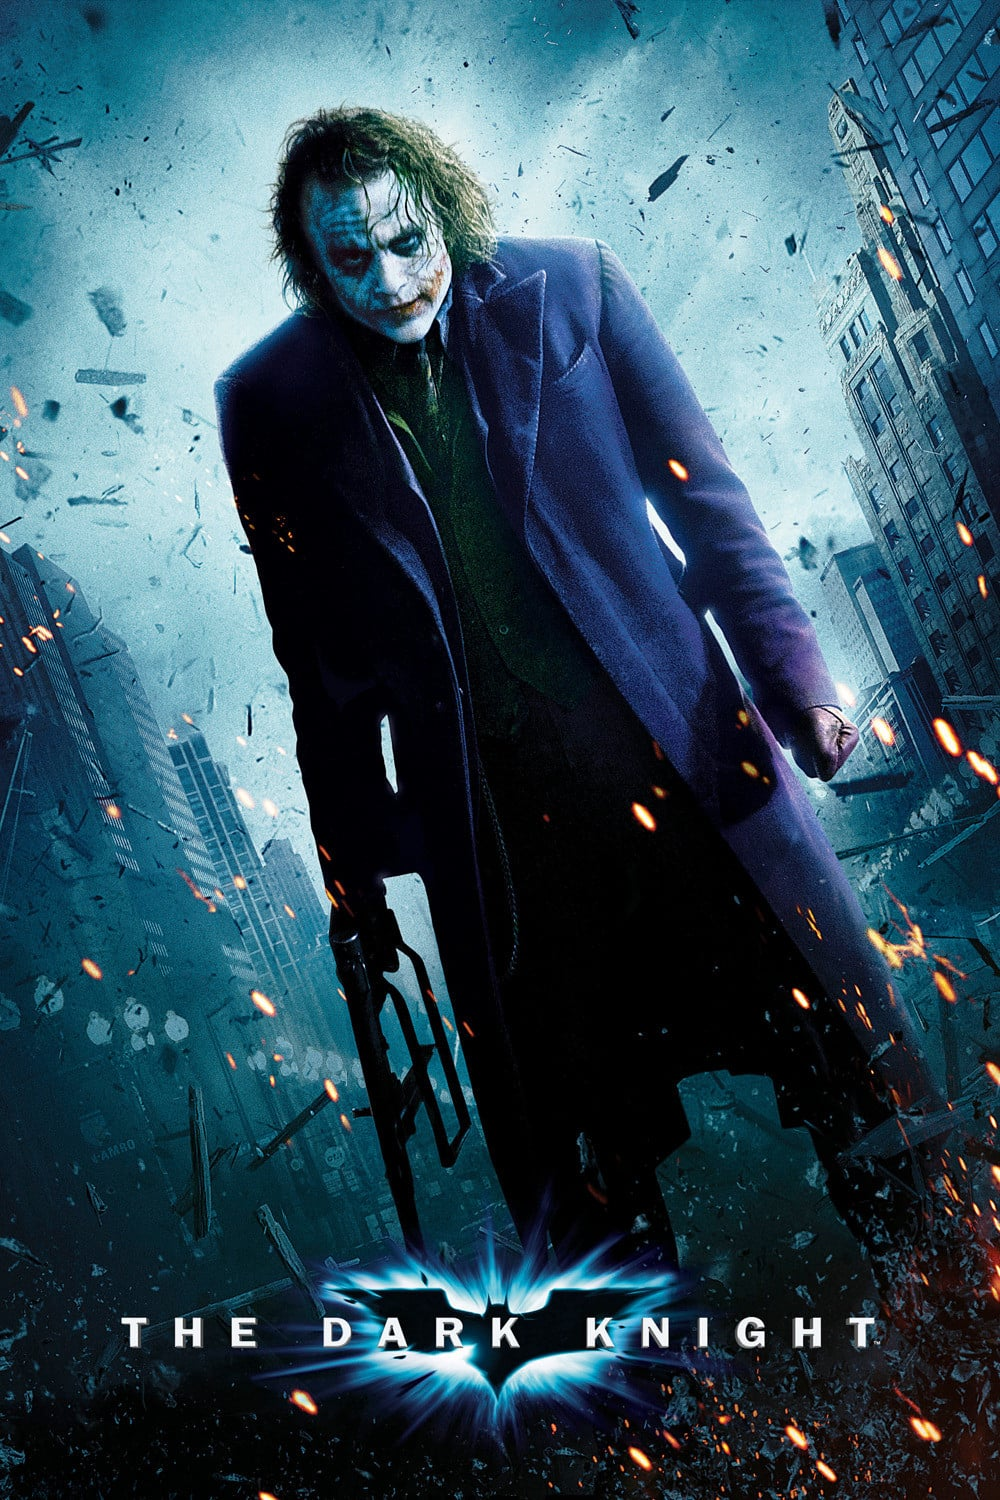 the dark knight poster high quality HD printable wallpapers 2008 joker robbery scene